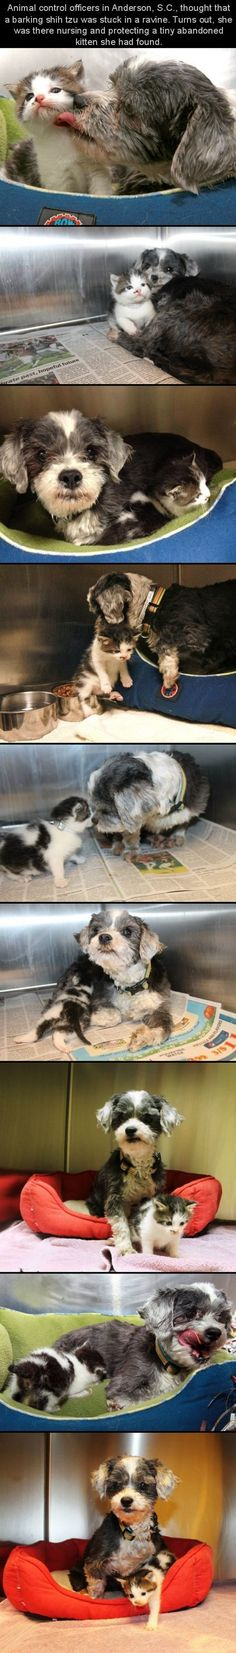 Dog Finds A Tiny Kitten, Risks Everything To Save Her...